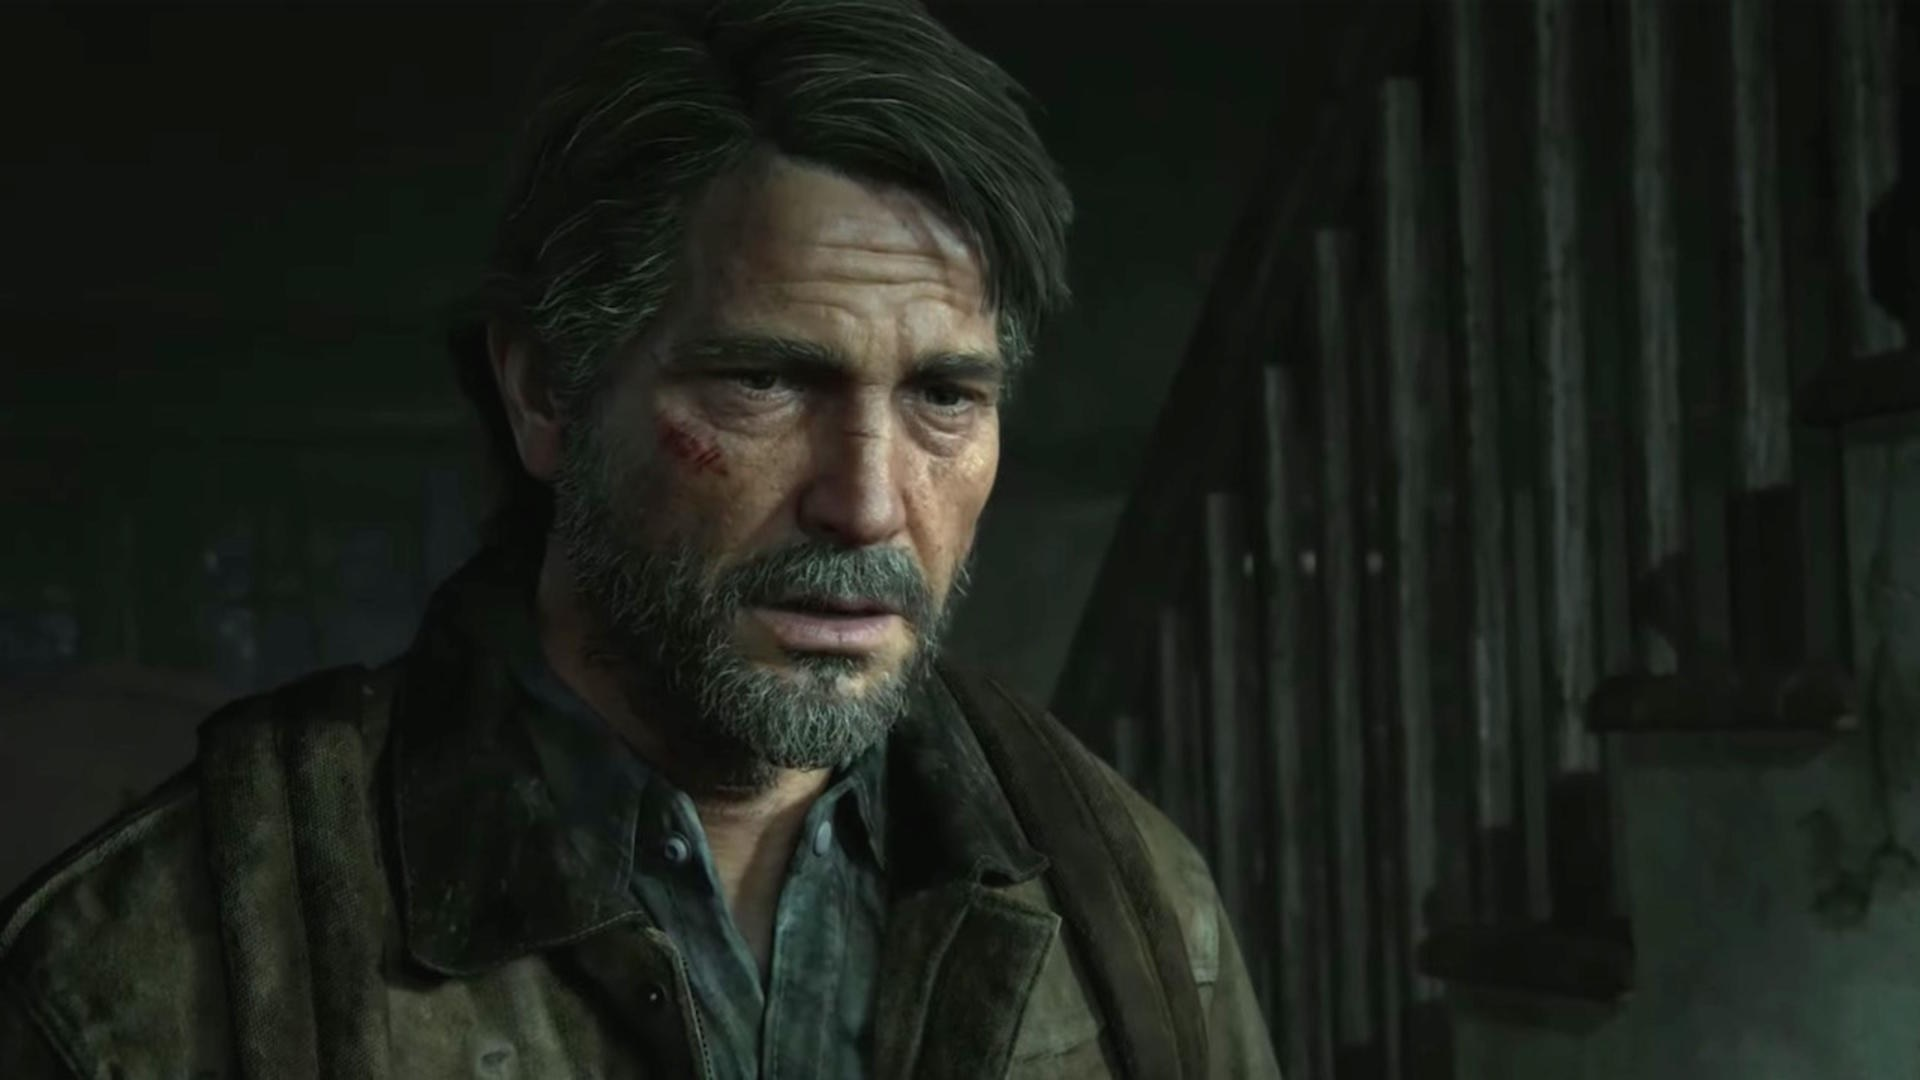 Both Joel and Ellie return | Everything We Know About the Last of Us Part II | Gammicks